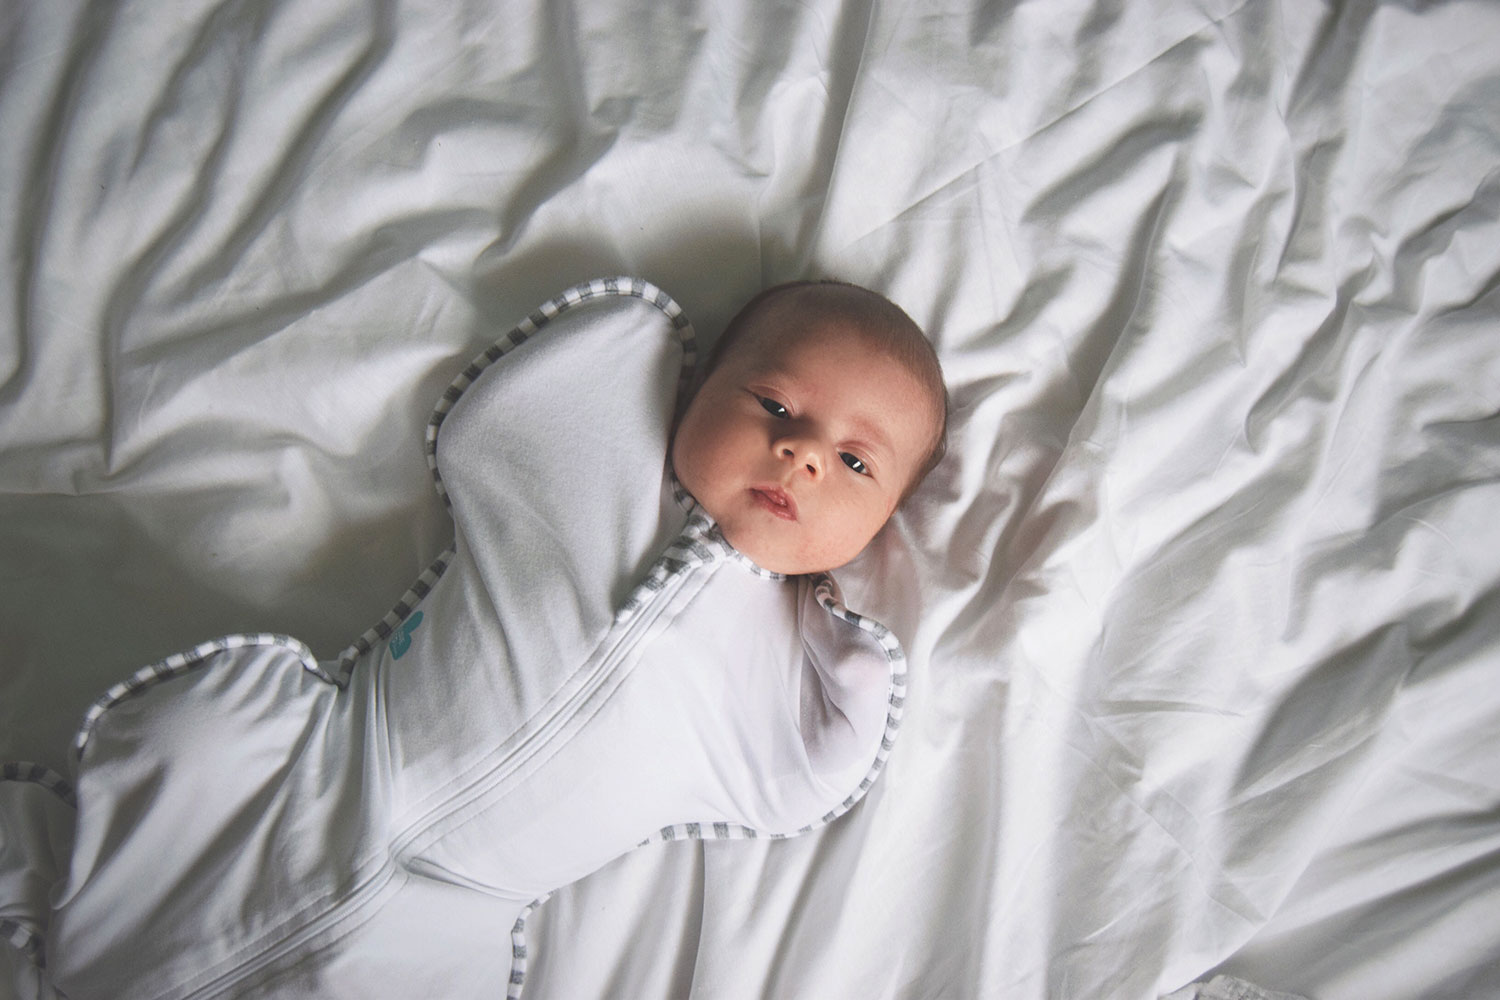 The Love to Dream SwaddleUP; Swaddling with Arms! - Newborn baby swaddling with arms up for self soothing